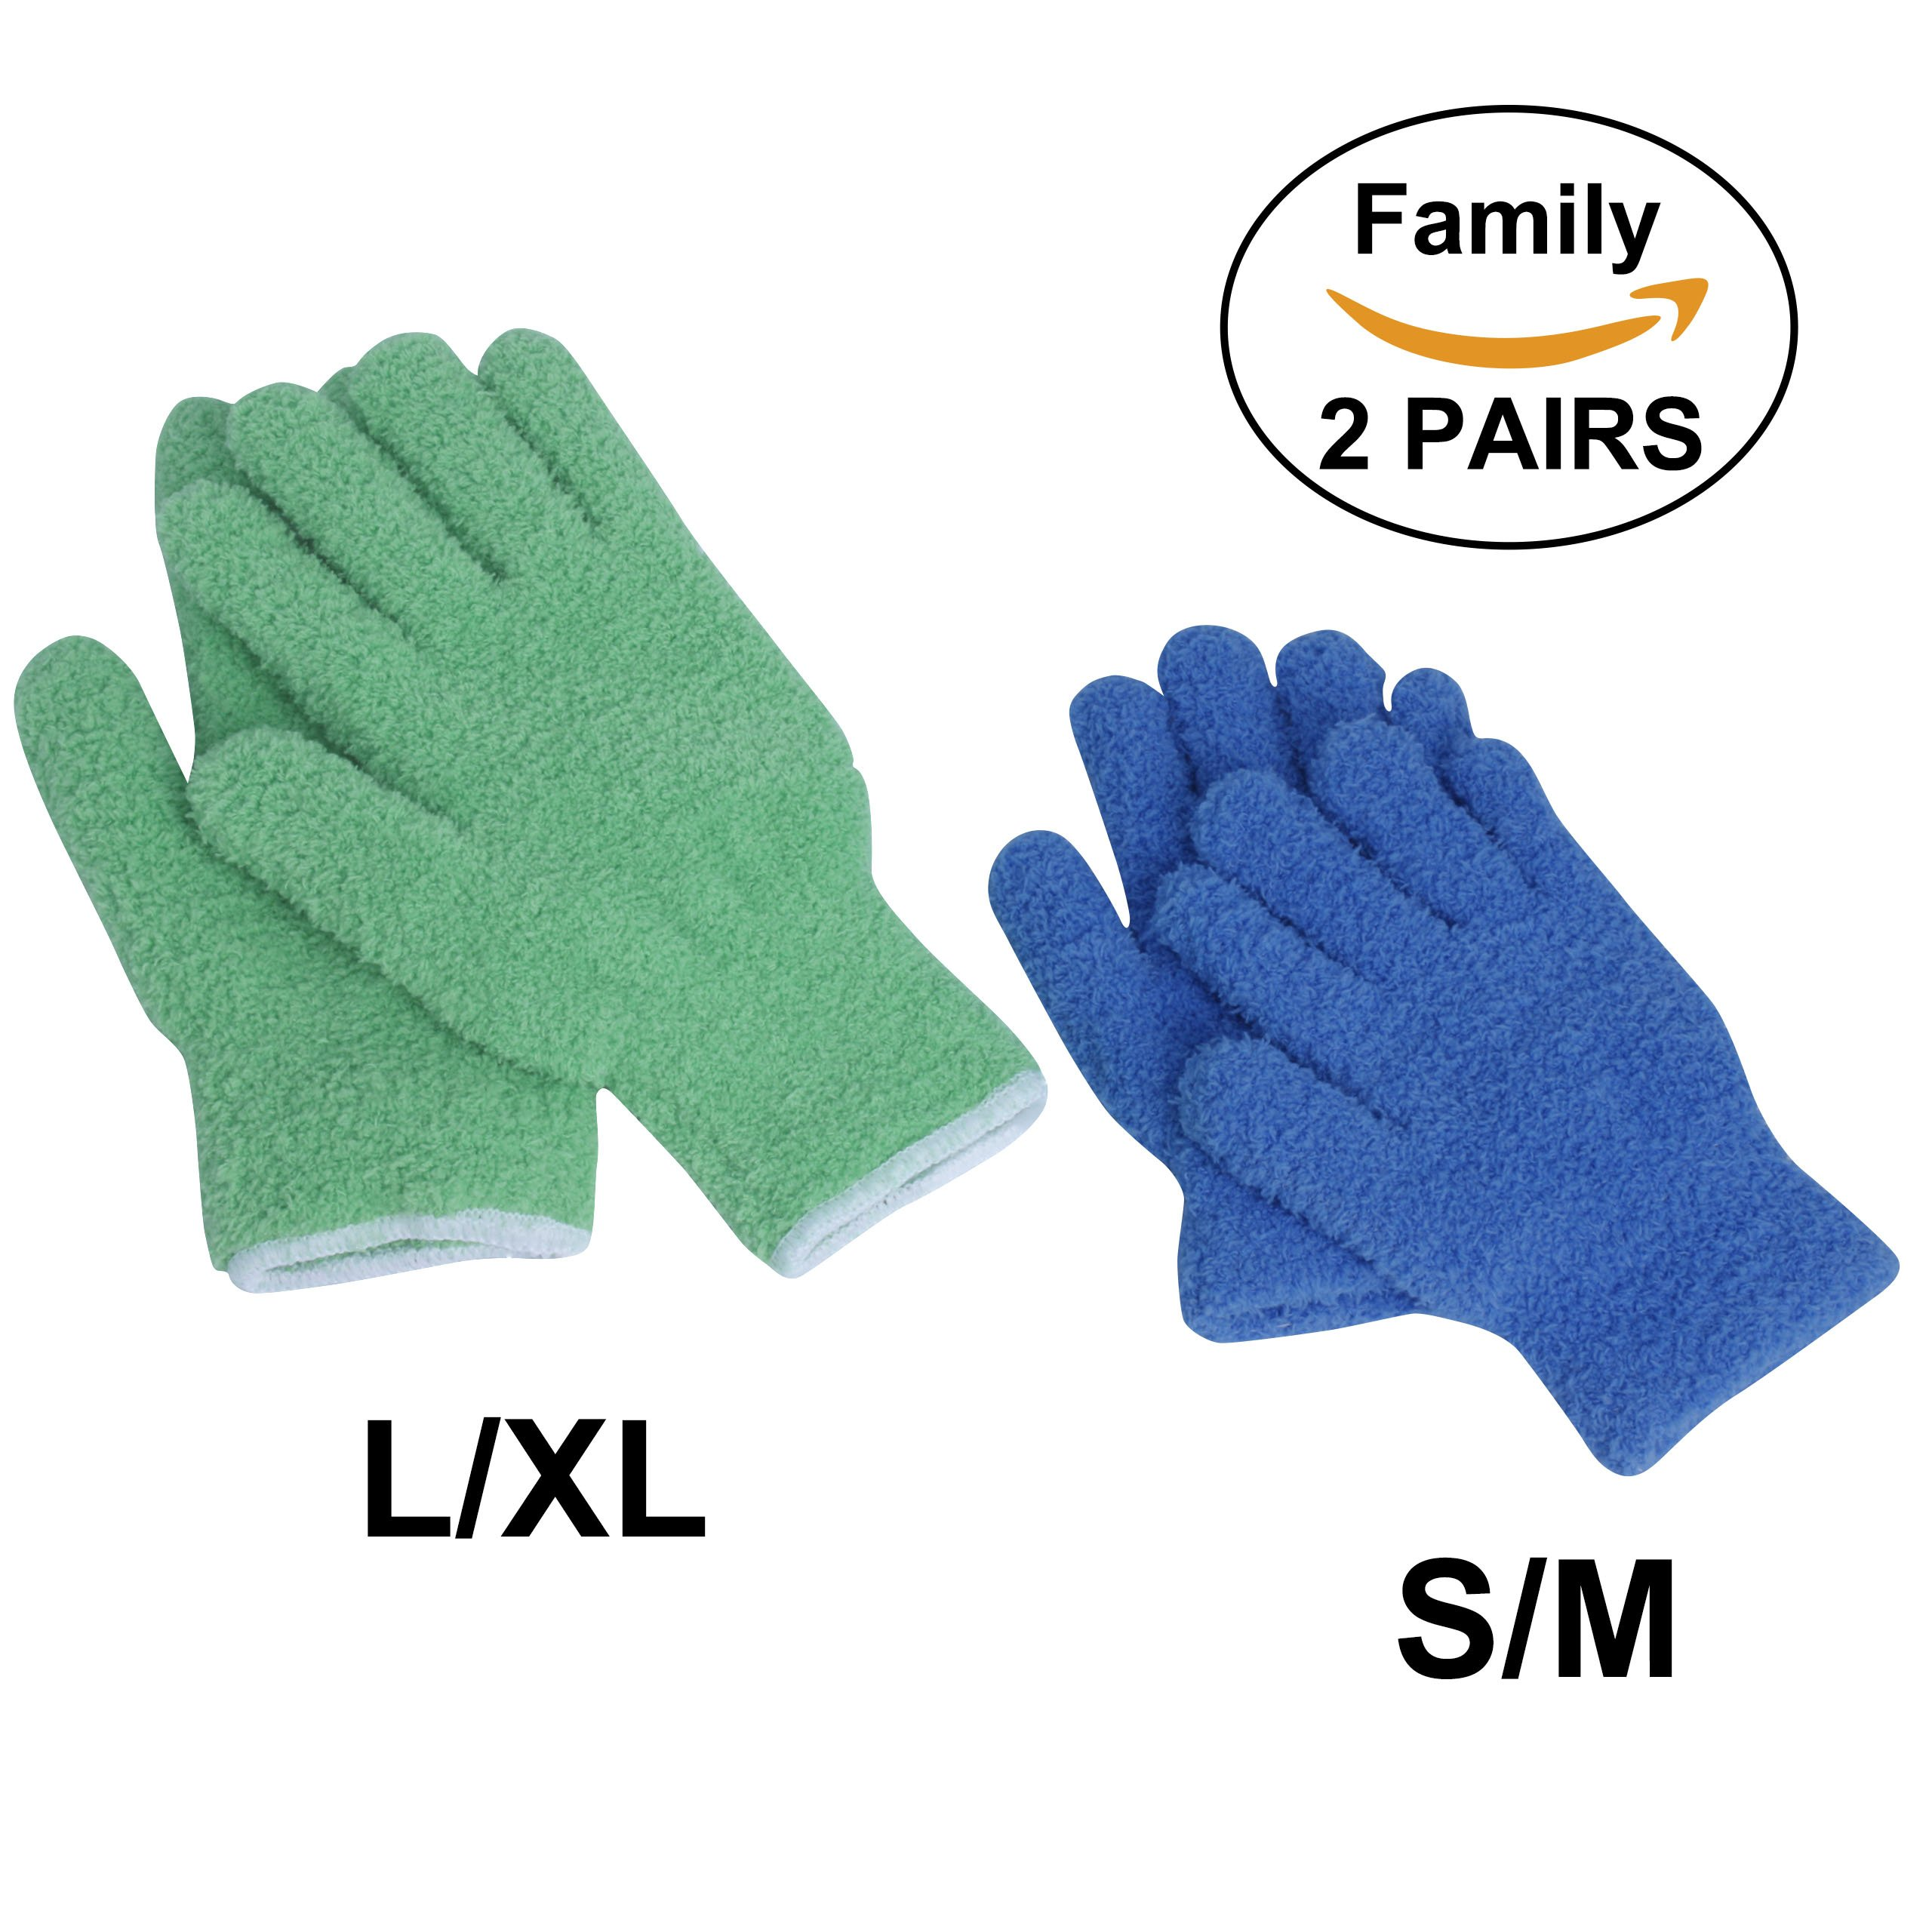 EvridWear Microfiber Dust Cleaning Gloves for house cleaning, perfect to clean mirrors, lamps and blinds. Auto Dusting Cleaning Gloves for Cars (Family Pack, 1 pair Size L/XL 1 pair Size S/M)